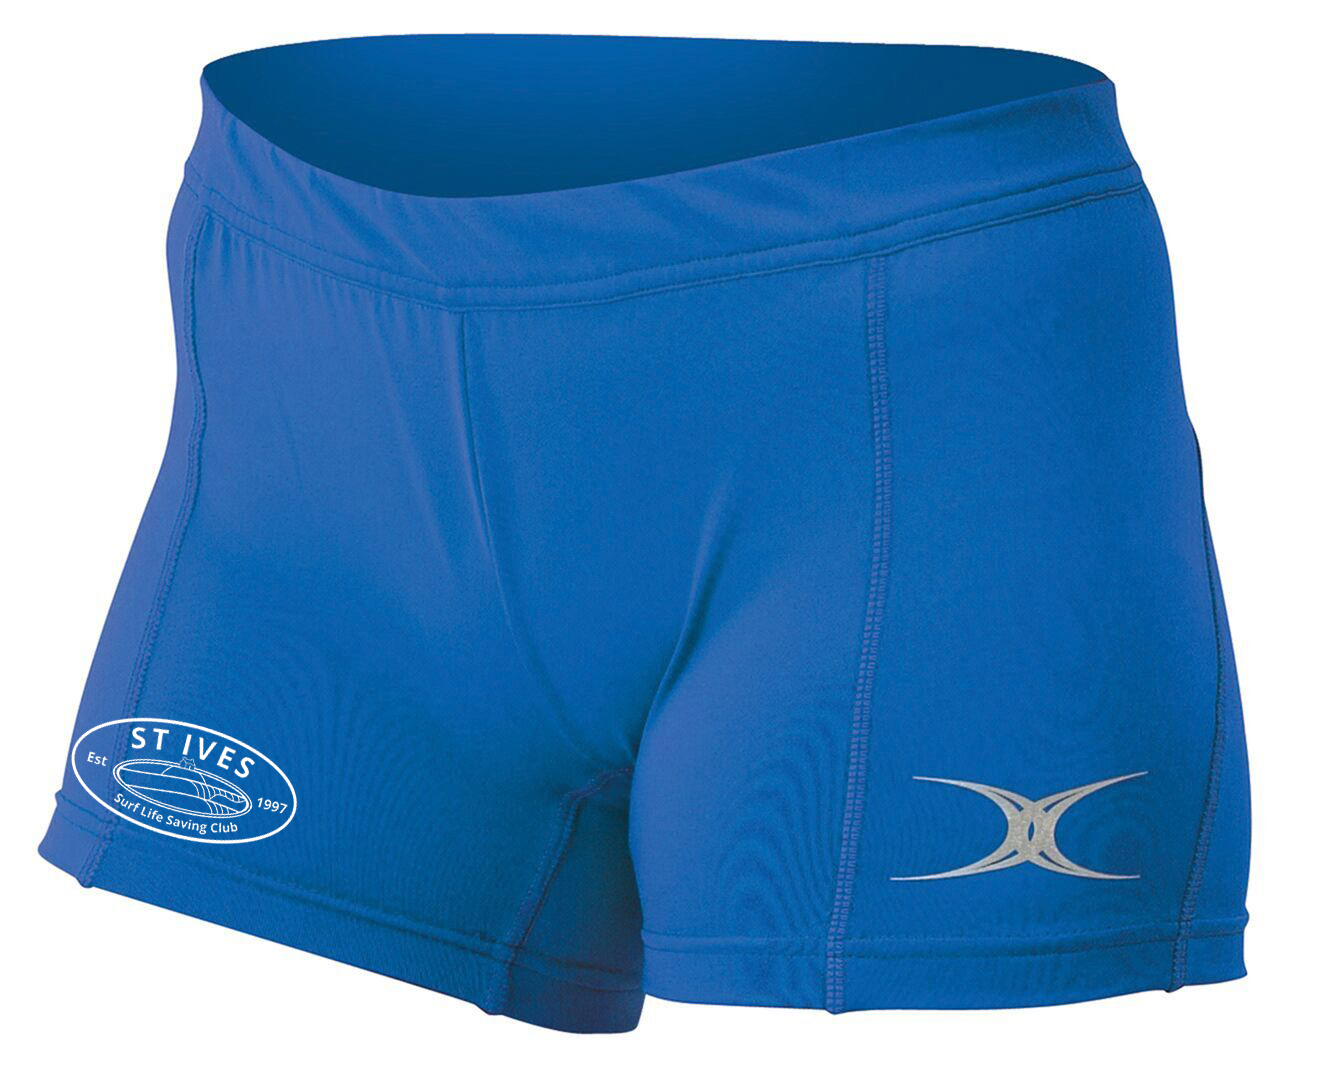 St Ives SLSC Beach Activity Shorts